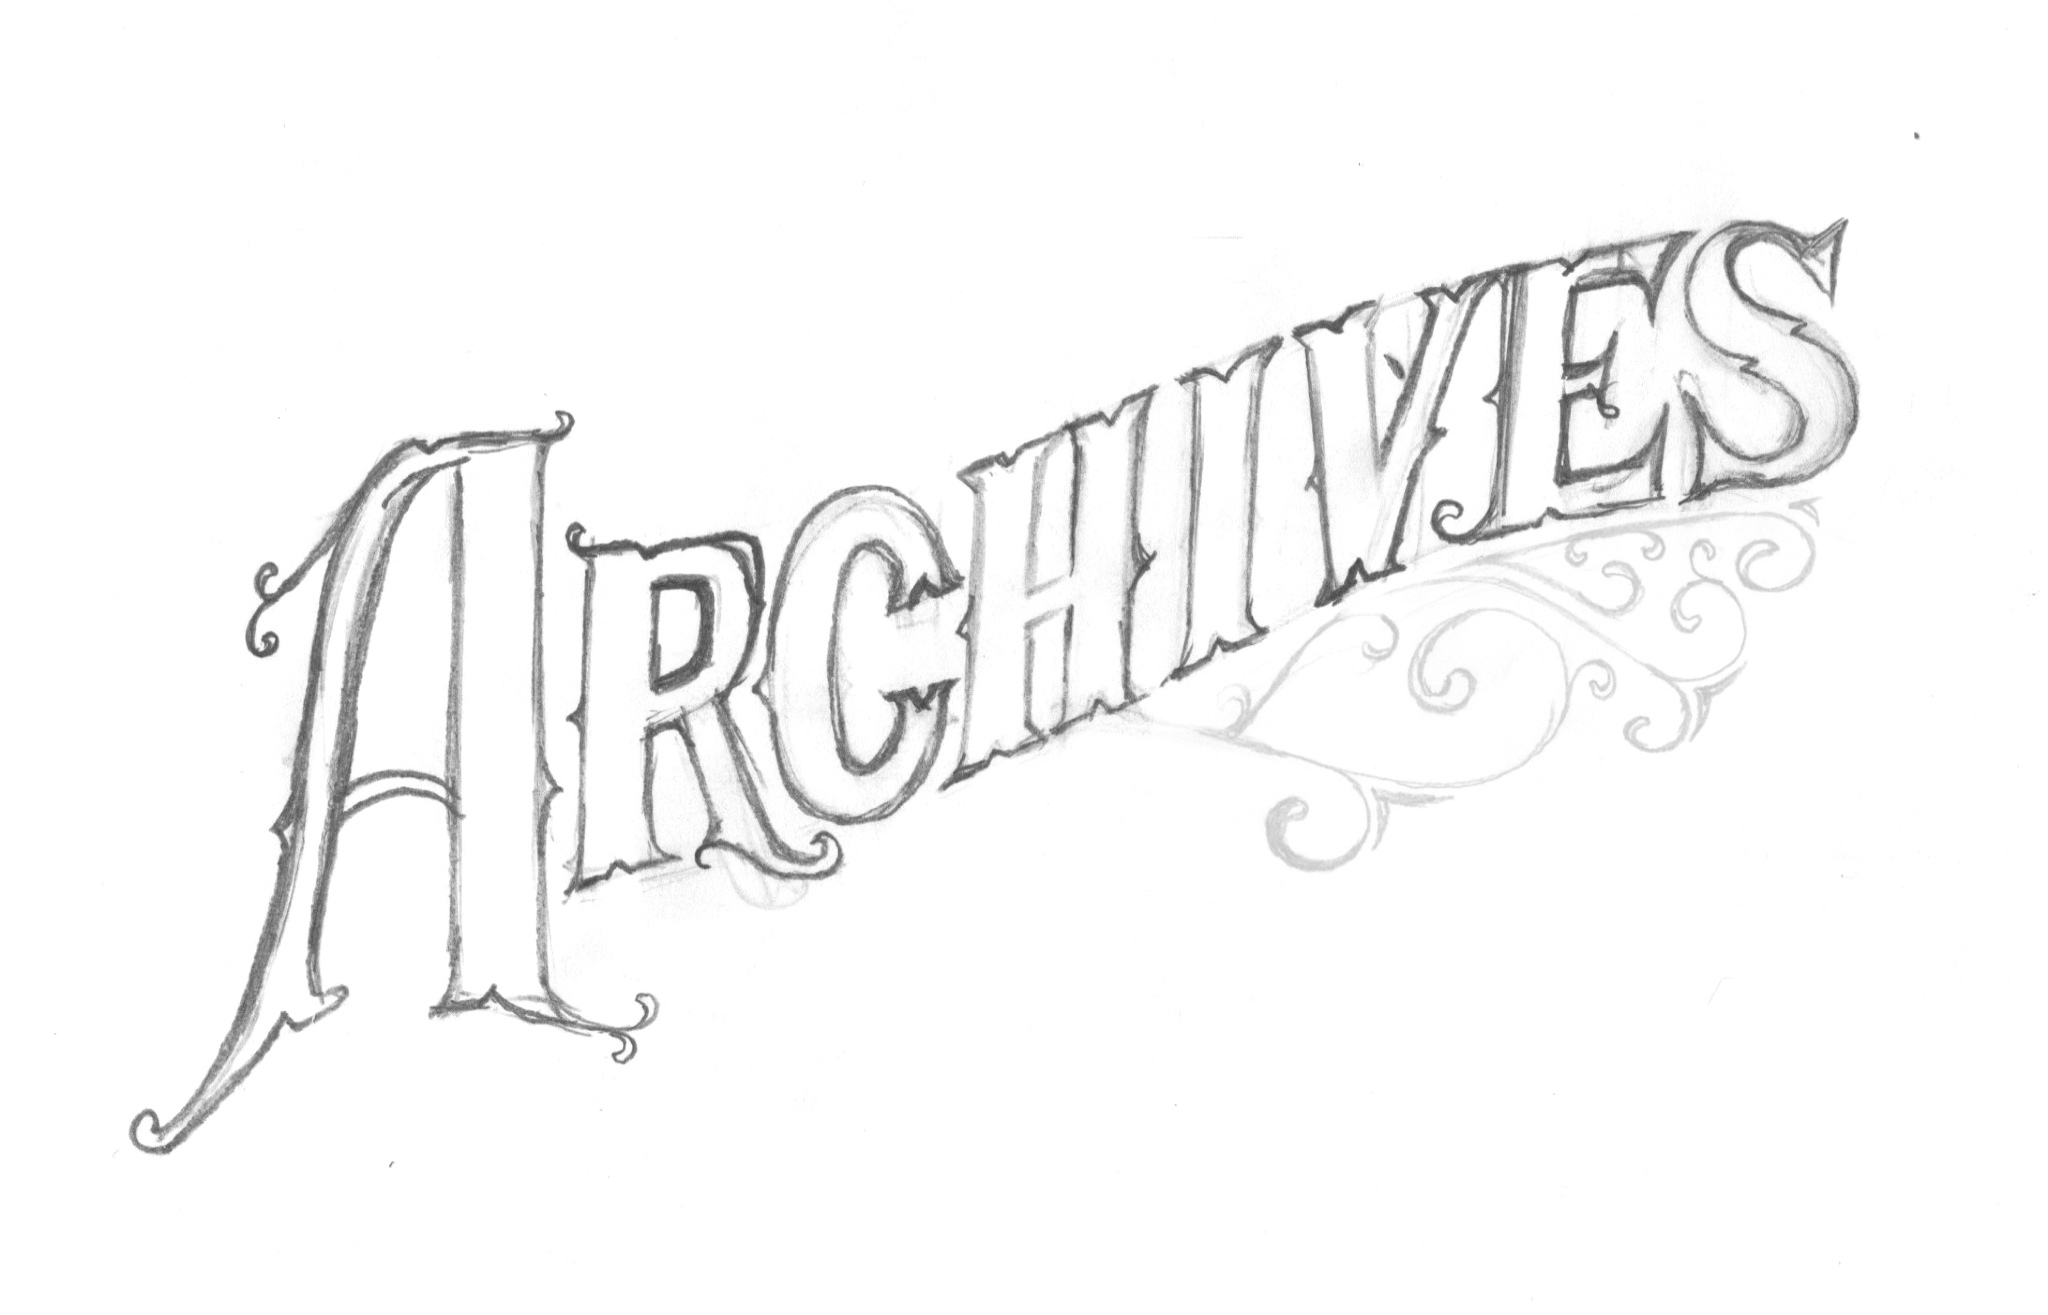 Tight sketch of the lettering, with ornamentation.